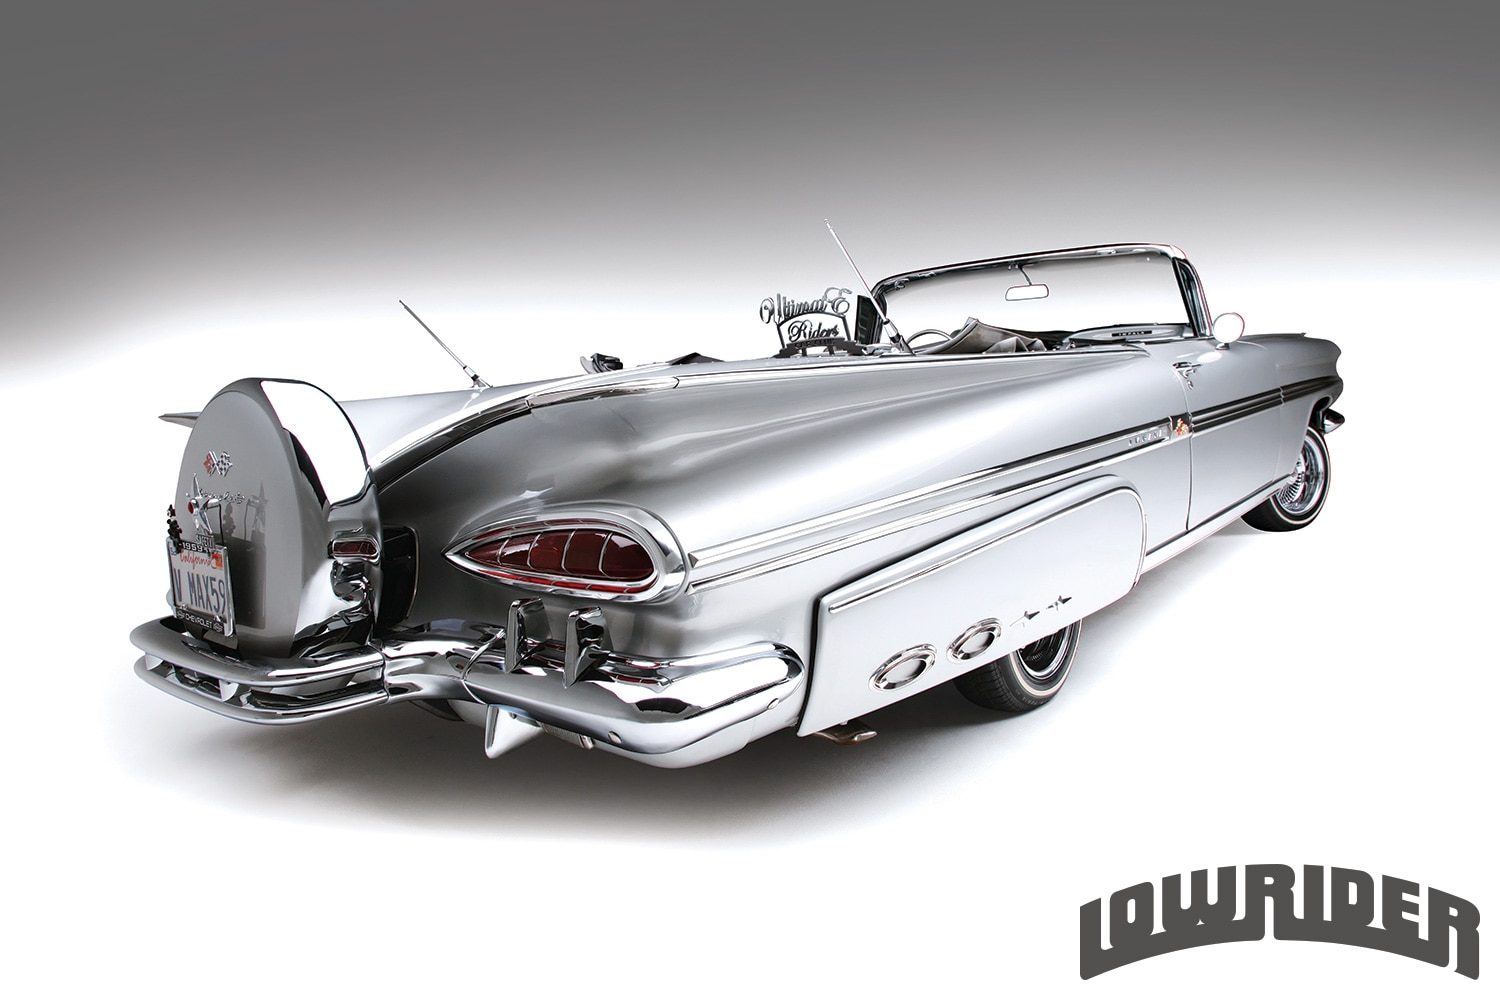 1958 And 1959 Chevrolet Impala Convertibles Lowrider